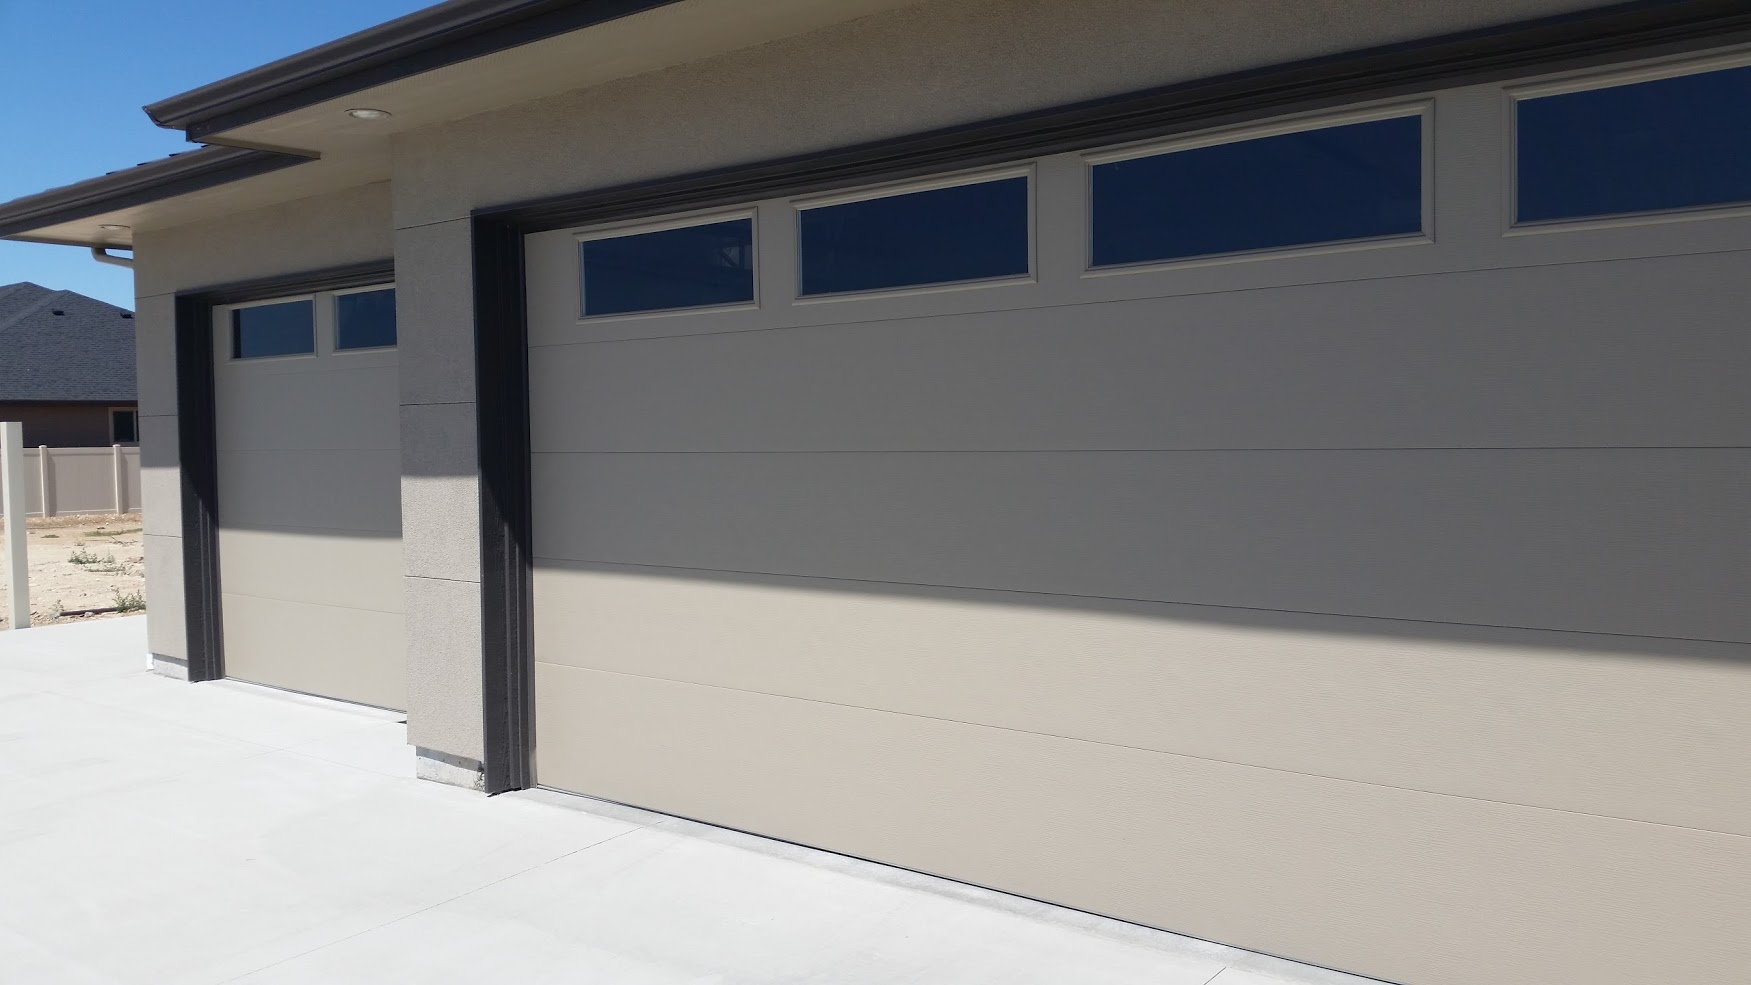 Good CUSTOM GARAGE OPTIONSu2013 Not Every Garage Is One Size Fits All. Sometimes You  Need A Custom Size Door For Odd Sized Openings, Low Clearance Issues, ...